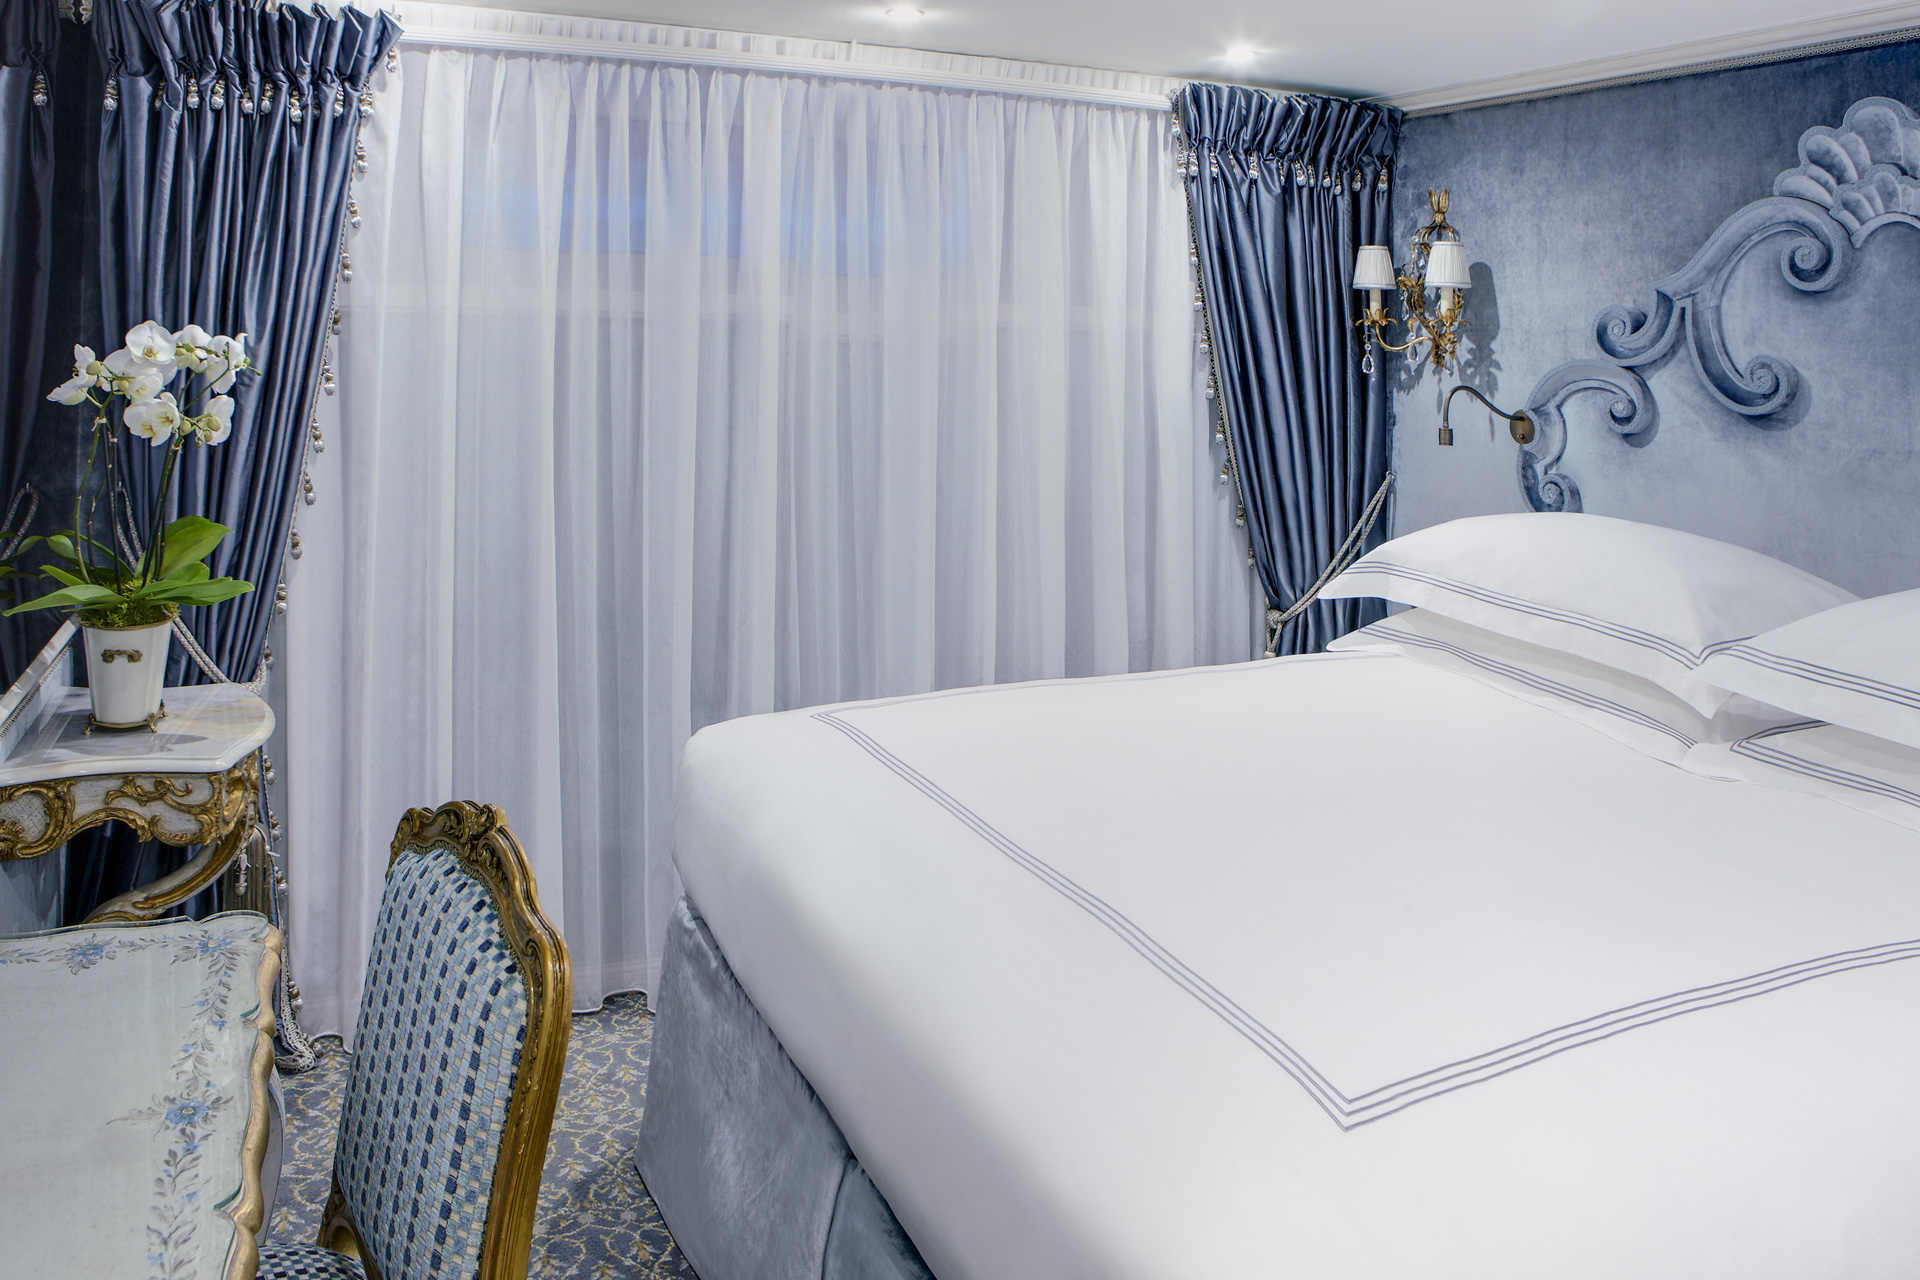 UNIWORLD Boutique River Cruises SS Maria Theresa Accommodation Stateroom Category 4-5 2.jpg